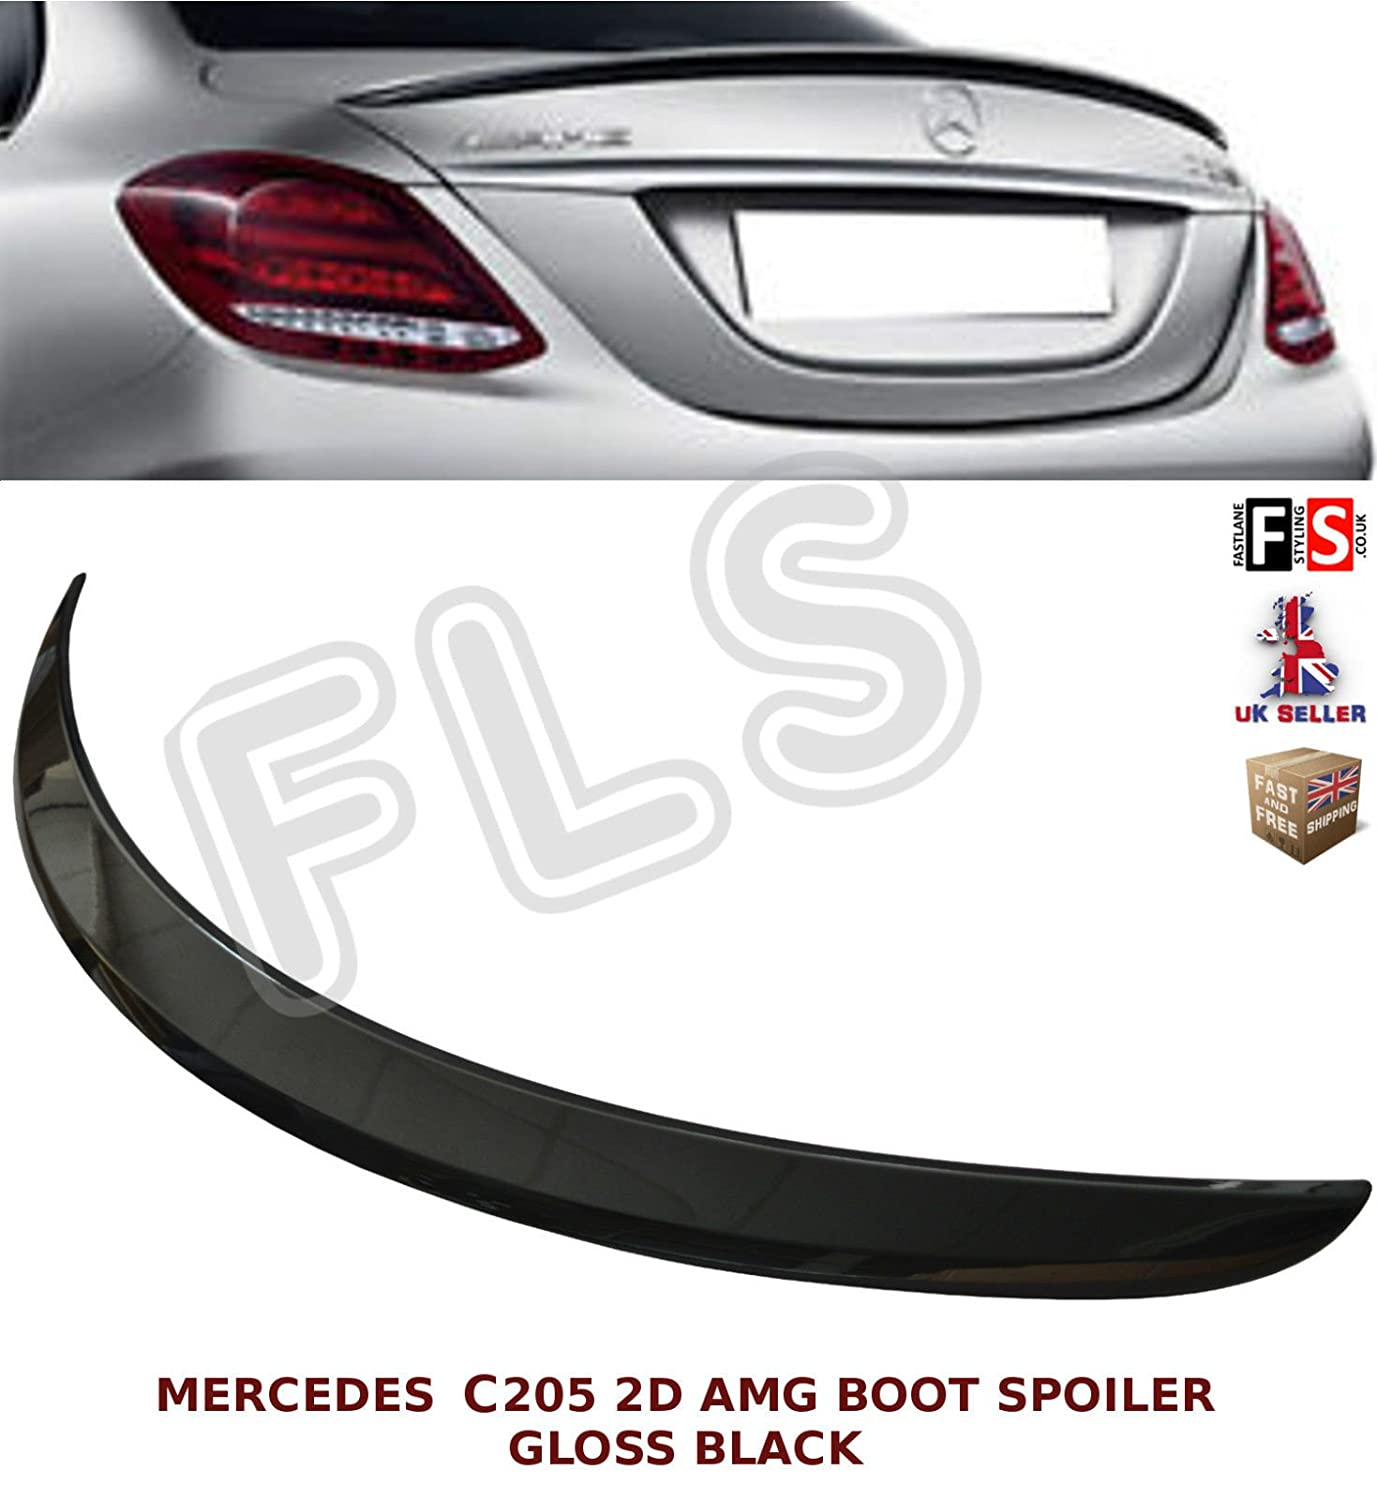 C CLASS C205 COUPE 2D AMG STYLE REAR TRUNK BOOT SPOILER GLOSS BLACK 2015+ FLS